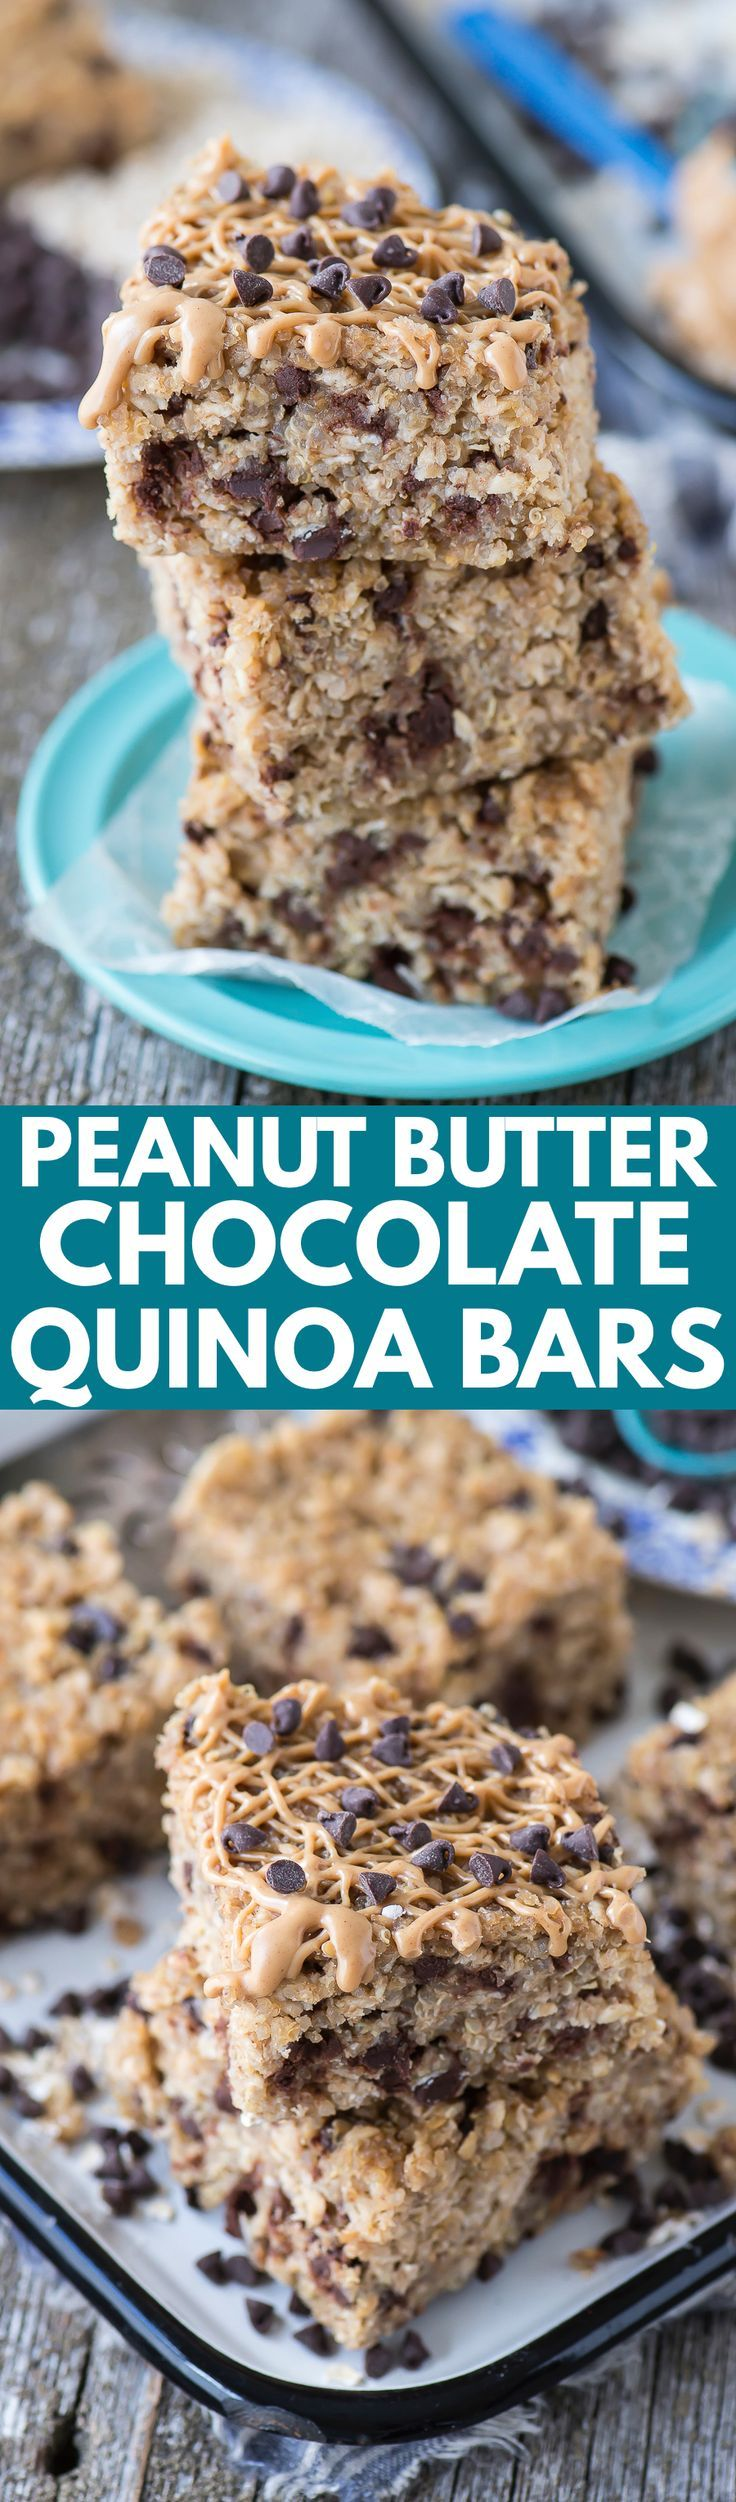 Healthy peanut butter chocolate chip quinoa granola bars! 7 ingredients and 30 minutes to bake! The best homemade granola bar! (oatmeal squares granola bars)